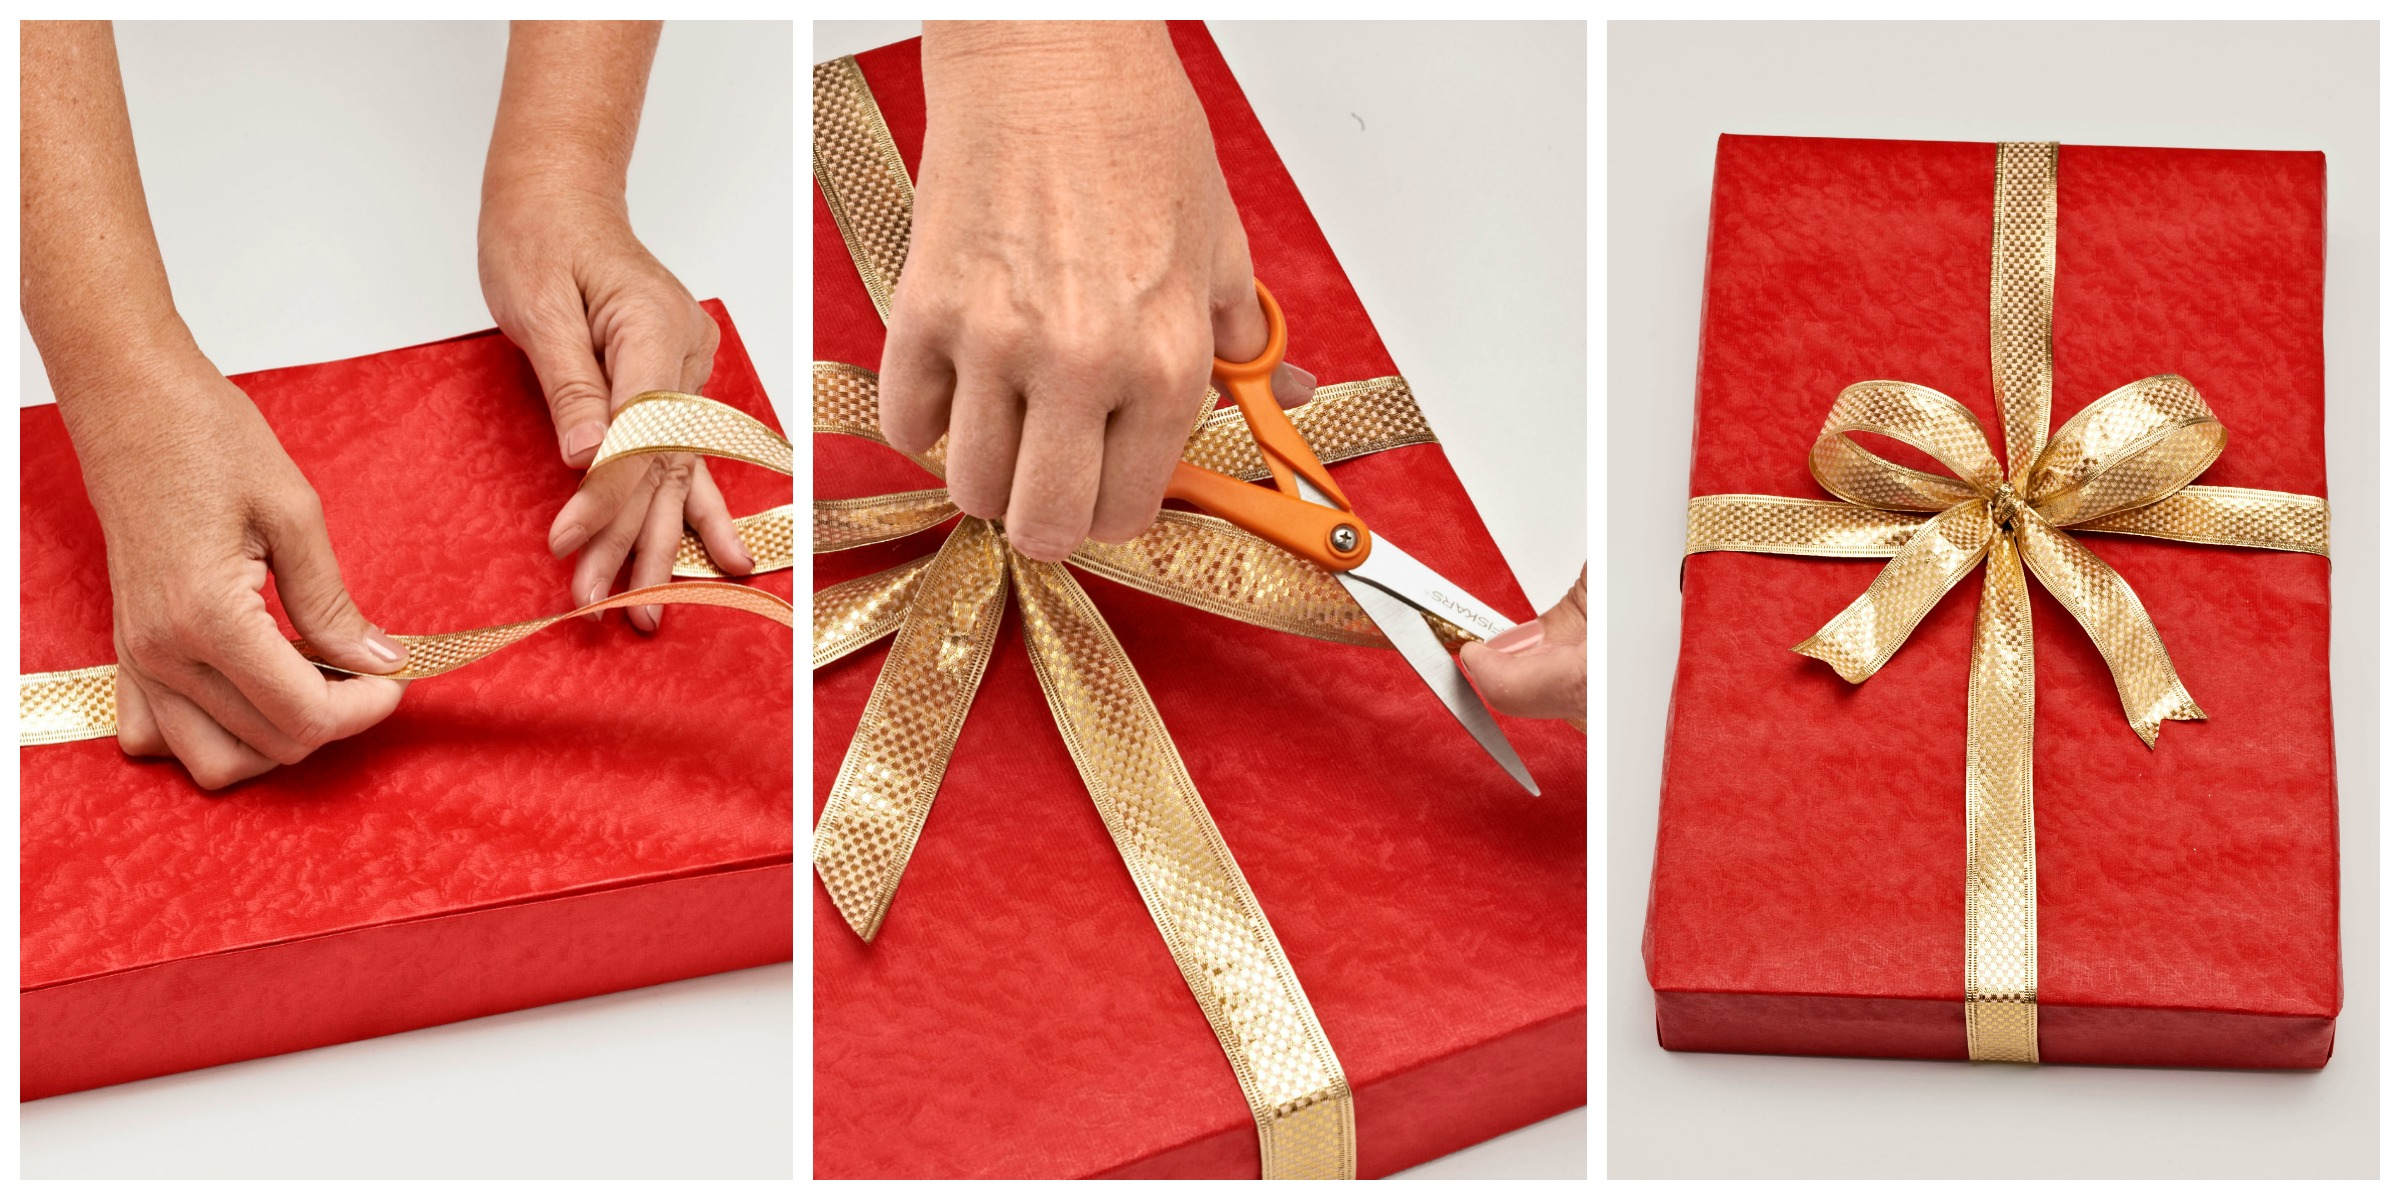 How to wrap a gift wrapping a present step by step for How to wrap presents with wrapping paper